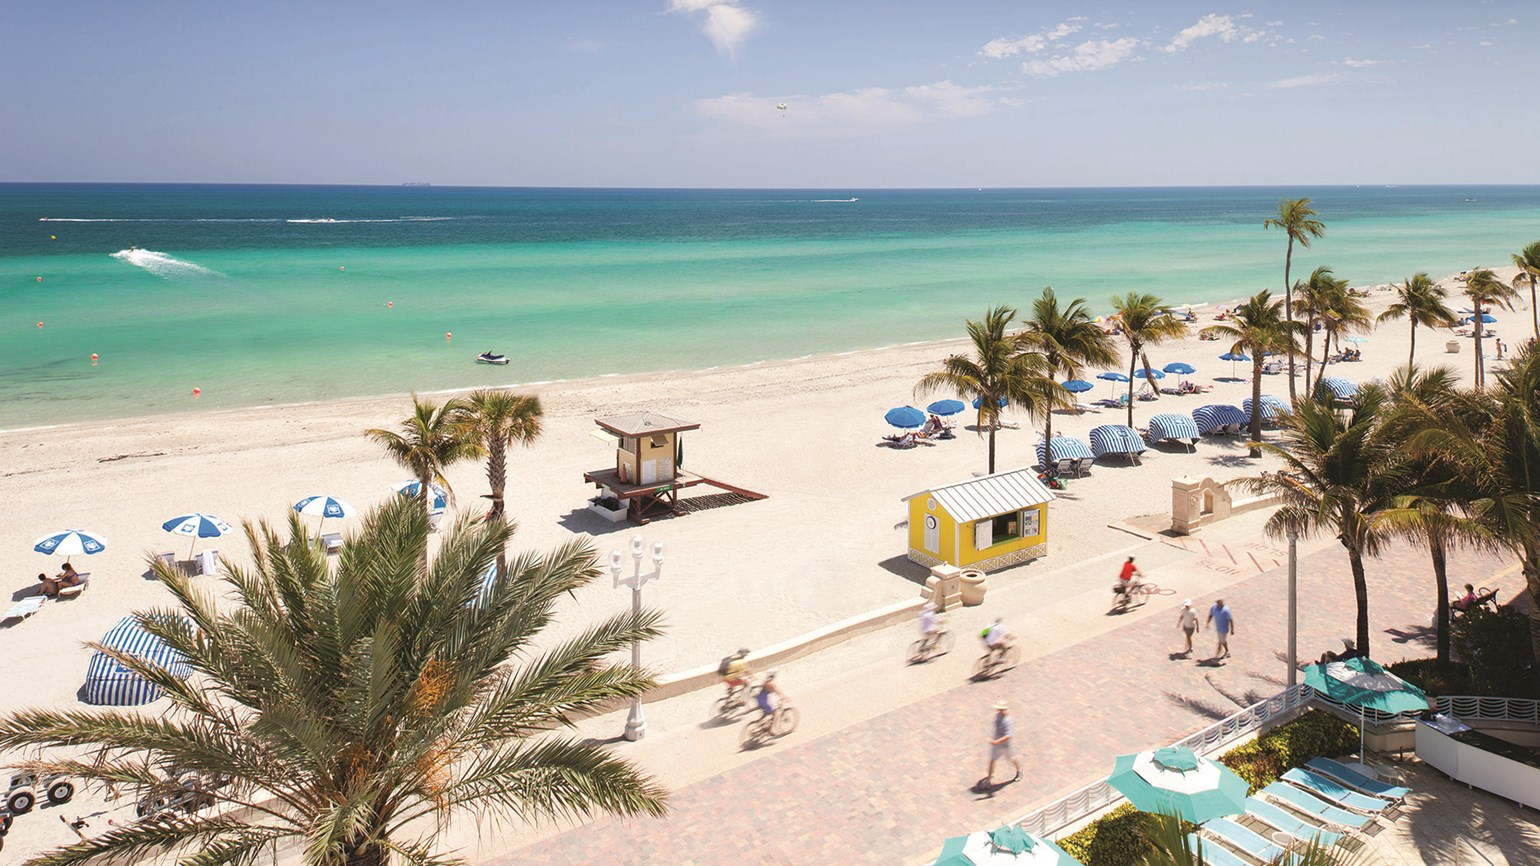 What's new at Florida's top beaches